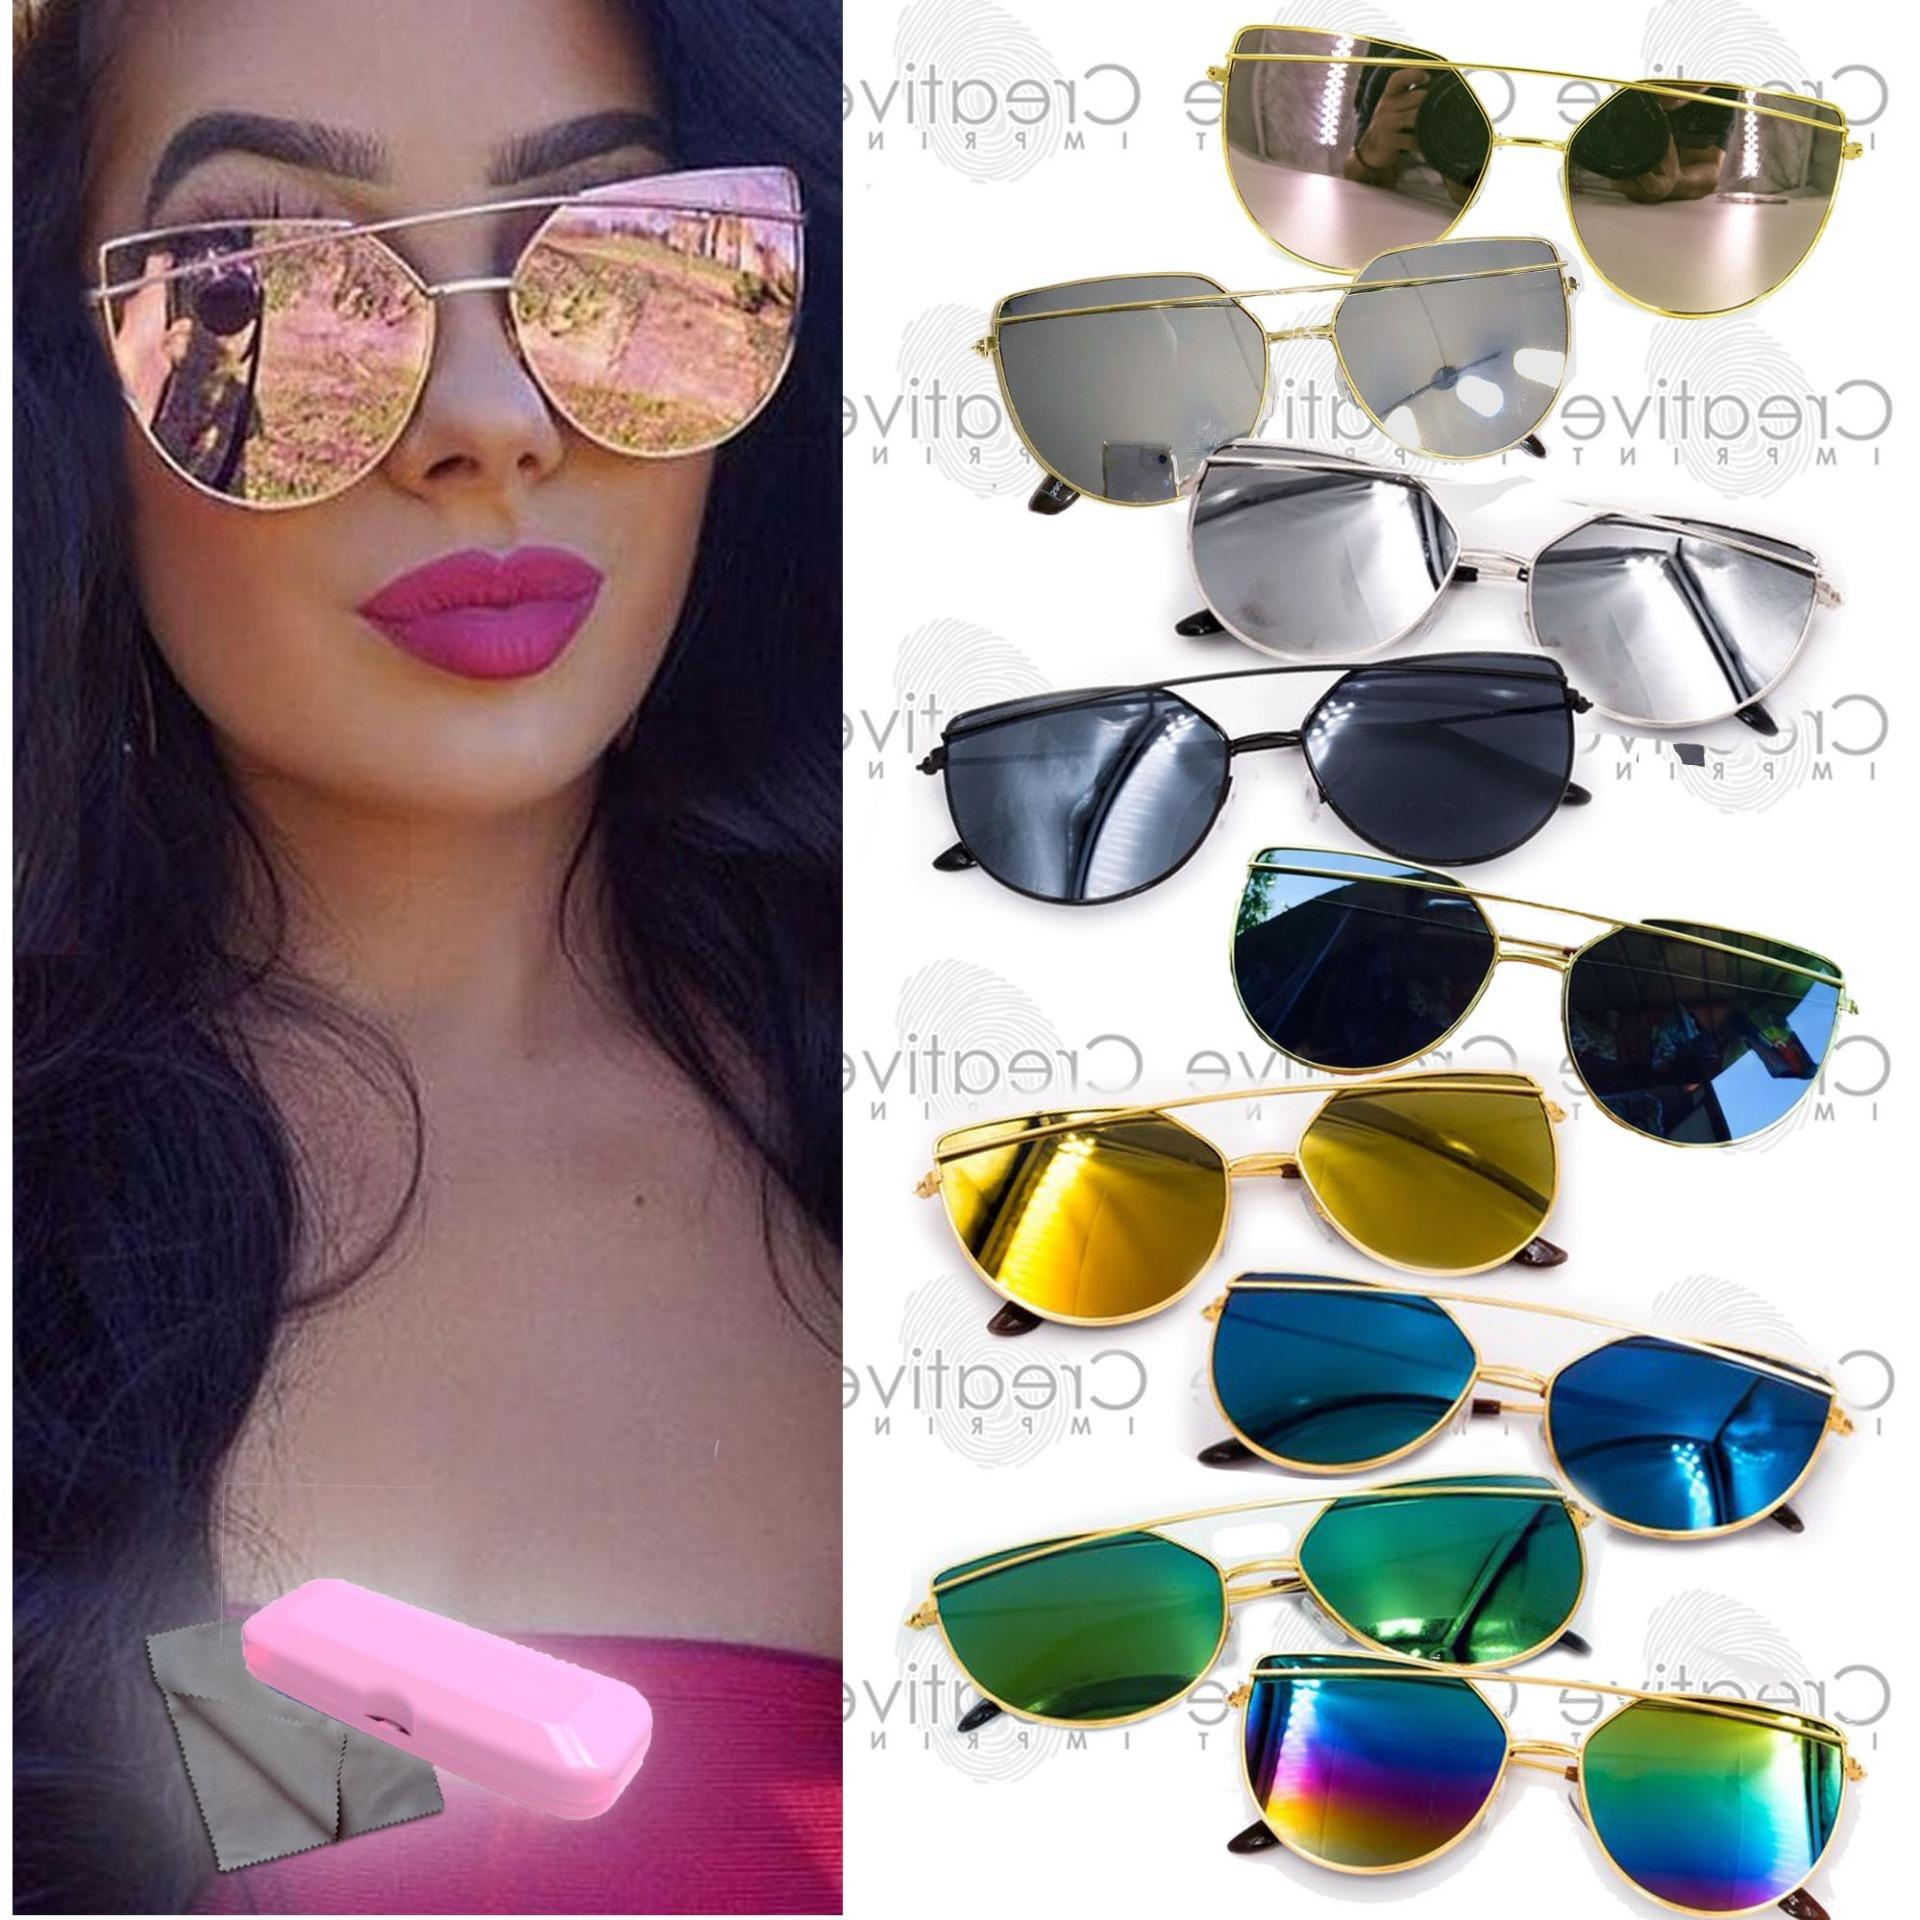 90d2a732ba4 Double Bridge Cat Eye Flat Sunnies Sunglasses (FREE CASE WIPER) Shades  Light Metal Lens